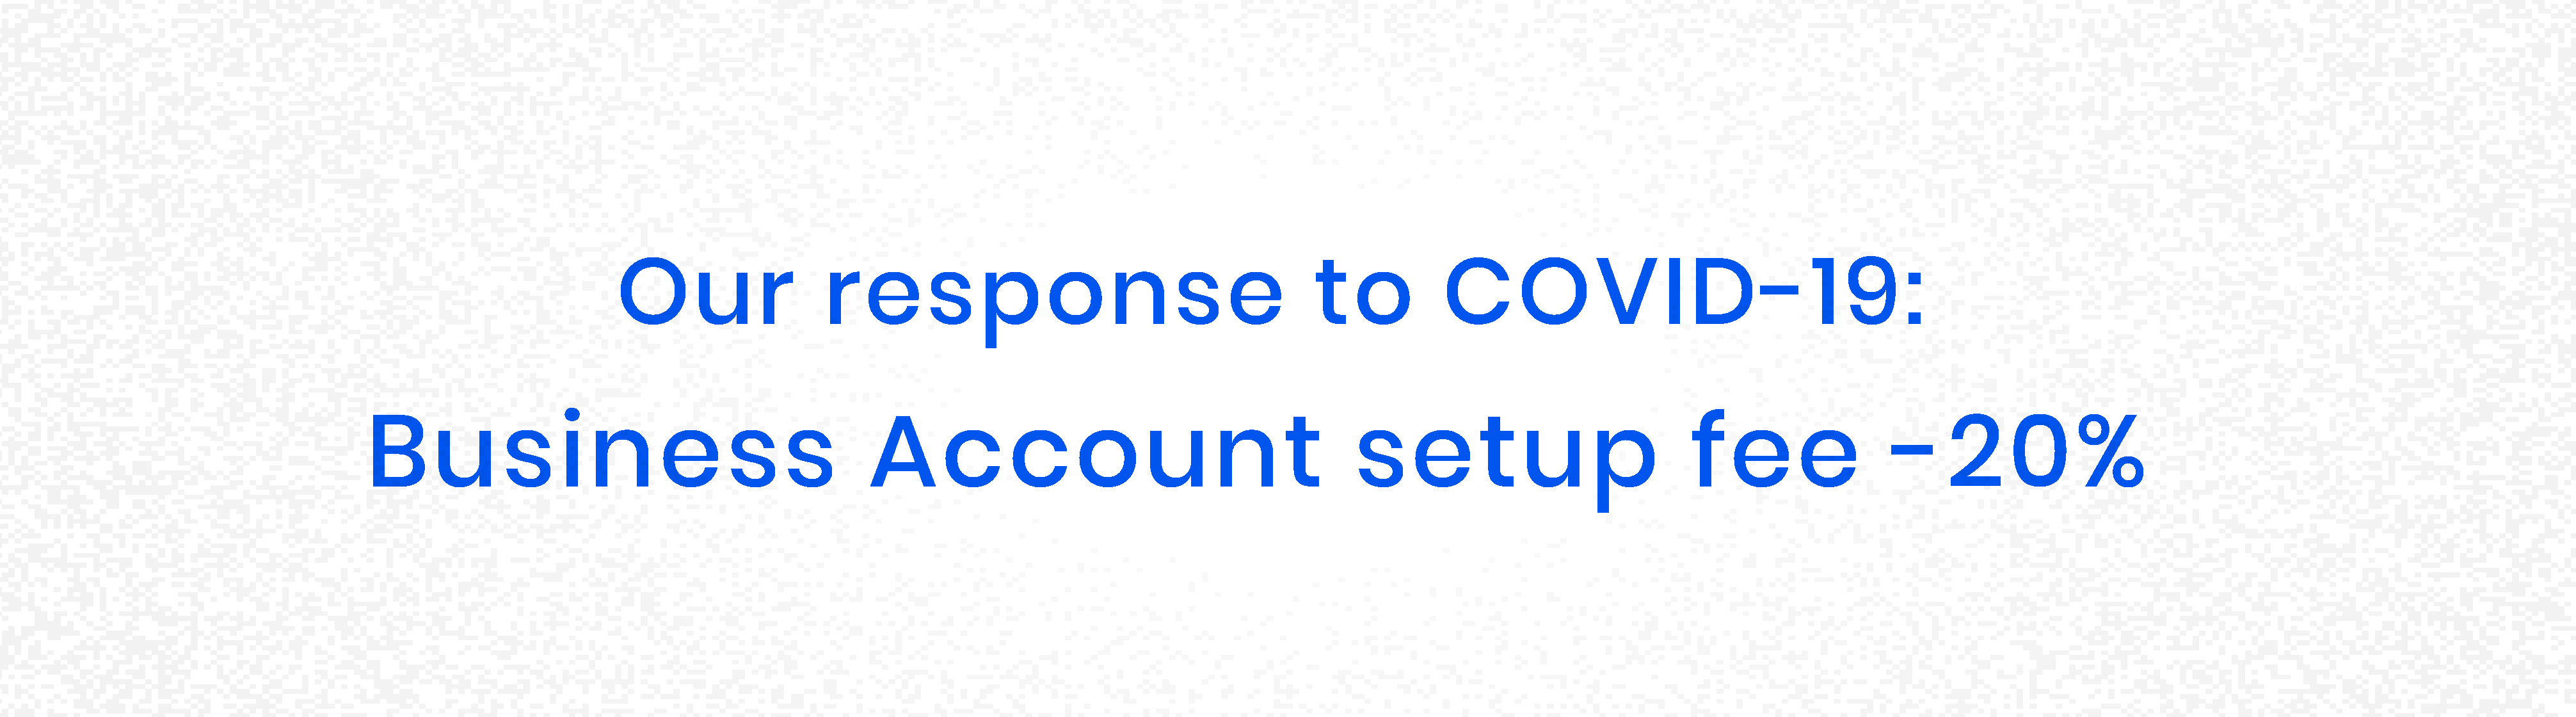 Support to businesses during covid-19 coronavirus